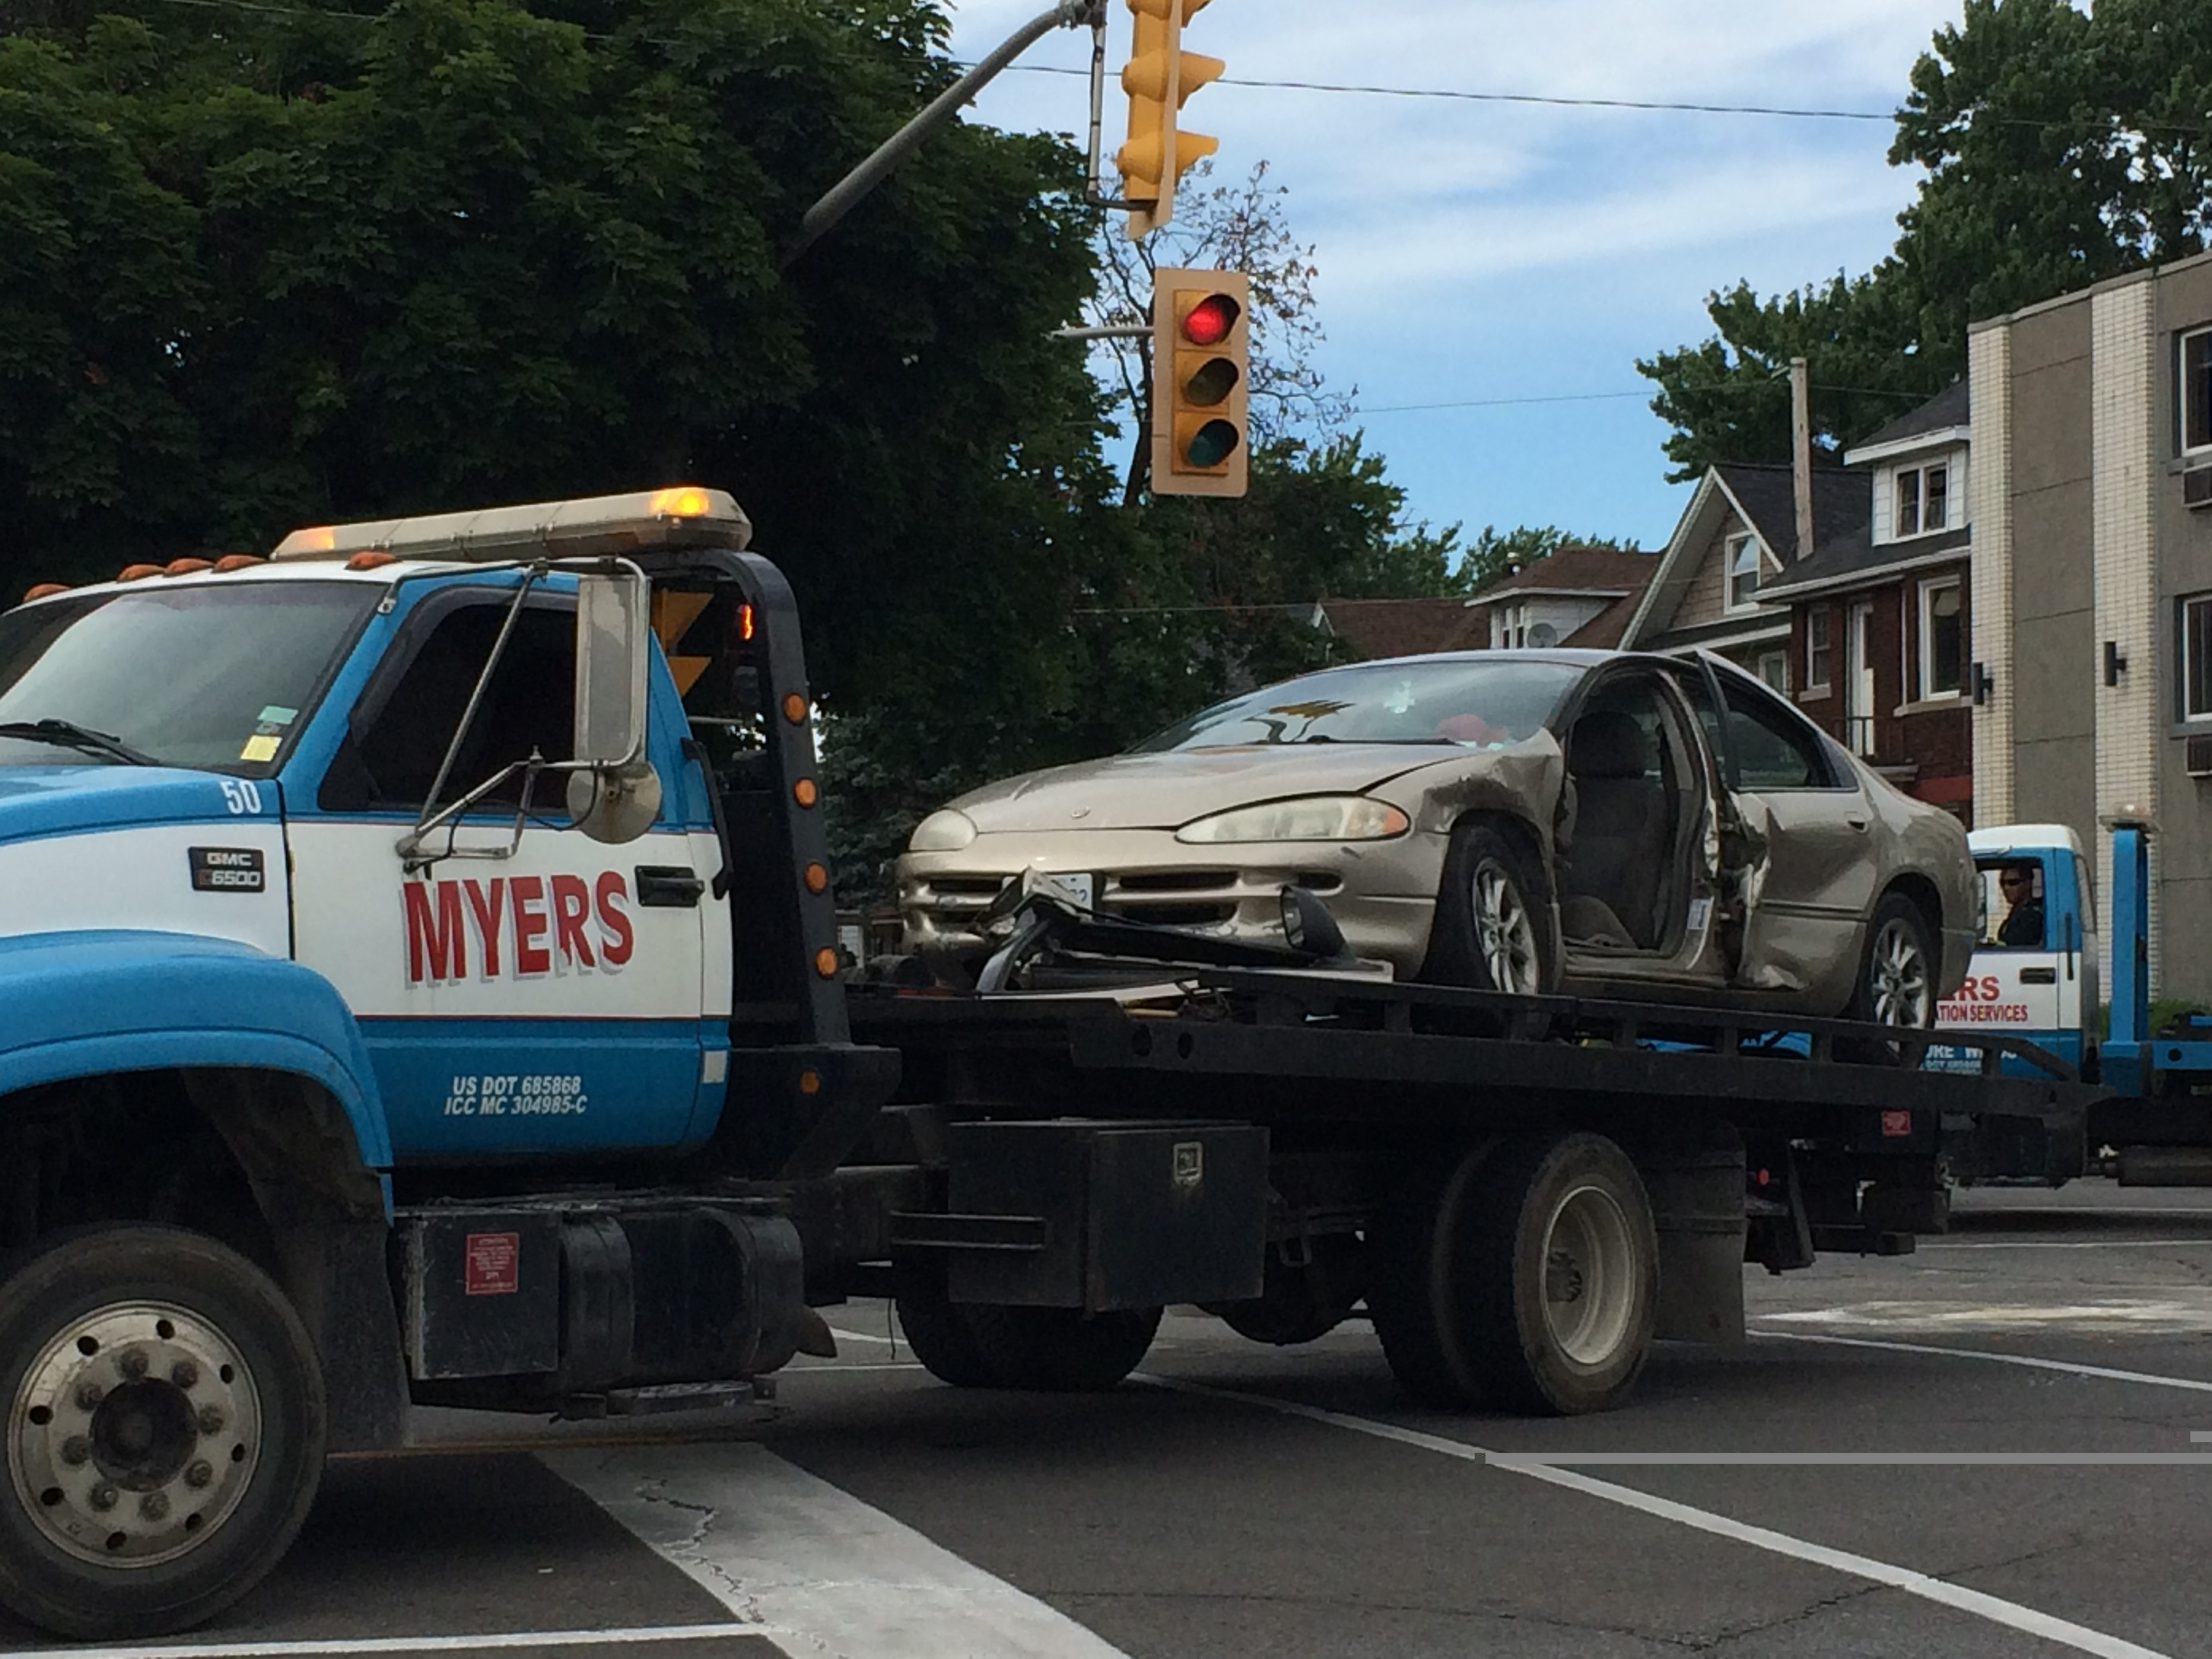 A driver has been charged following a two-vehicle crash at the intersection of University Ave. and Campbell Ave., July 5, 2014. (Photo by Ricardo Veneza)